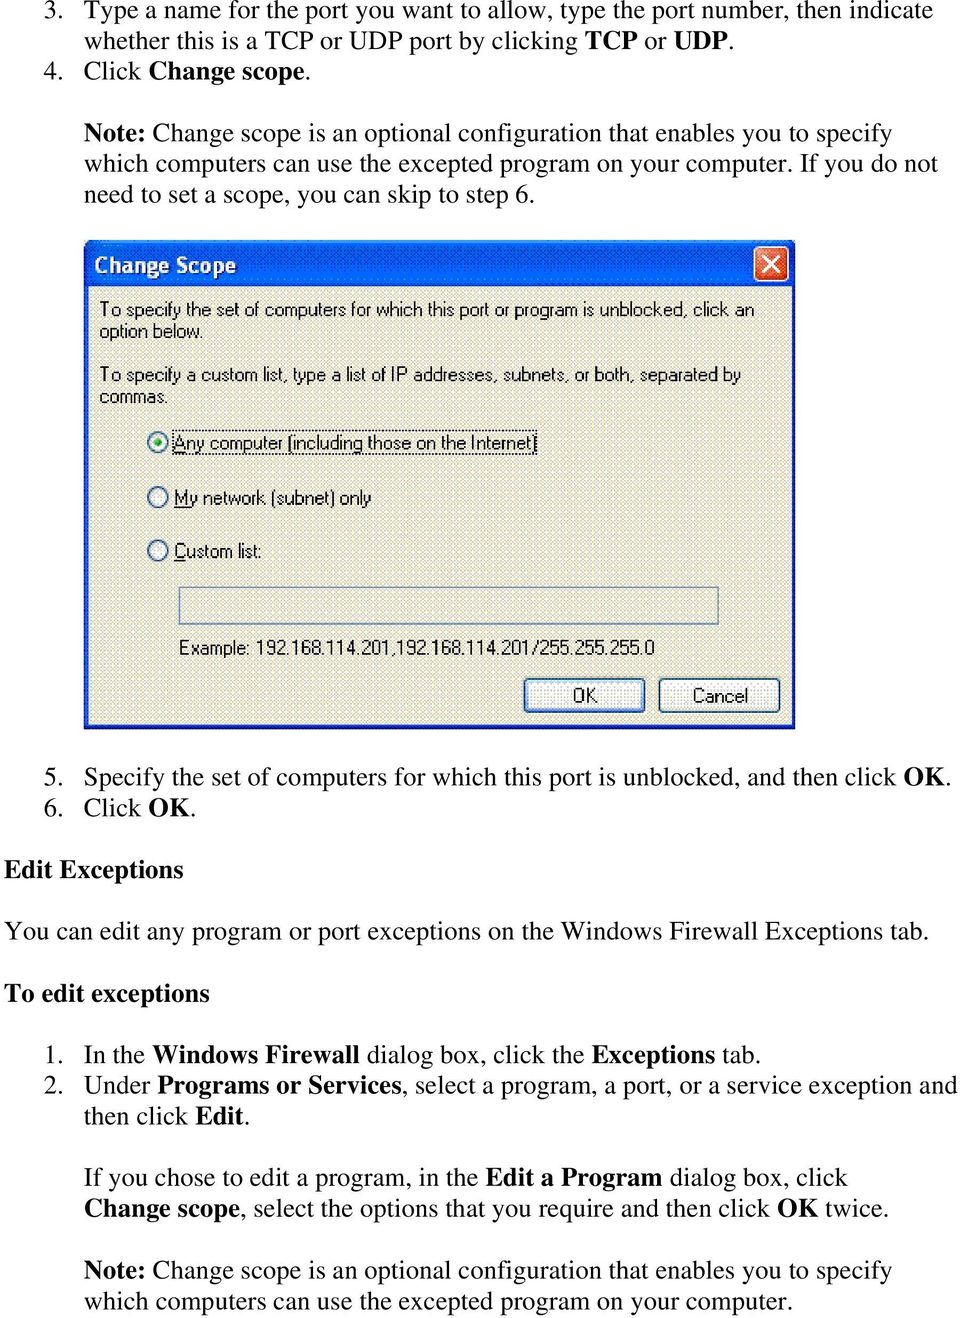 Specify the set of computers for which this port is unblocked, and then click OK. 6. Click OK. Edit Exceptions You can edit any program or port exceptions on the Windows Firewall Exceptions tab.